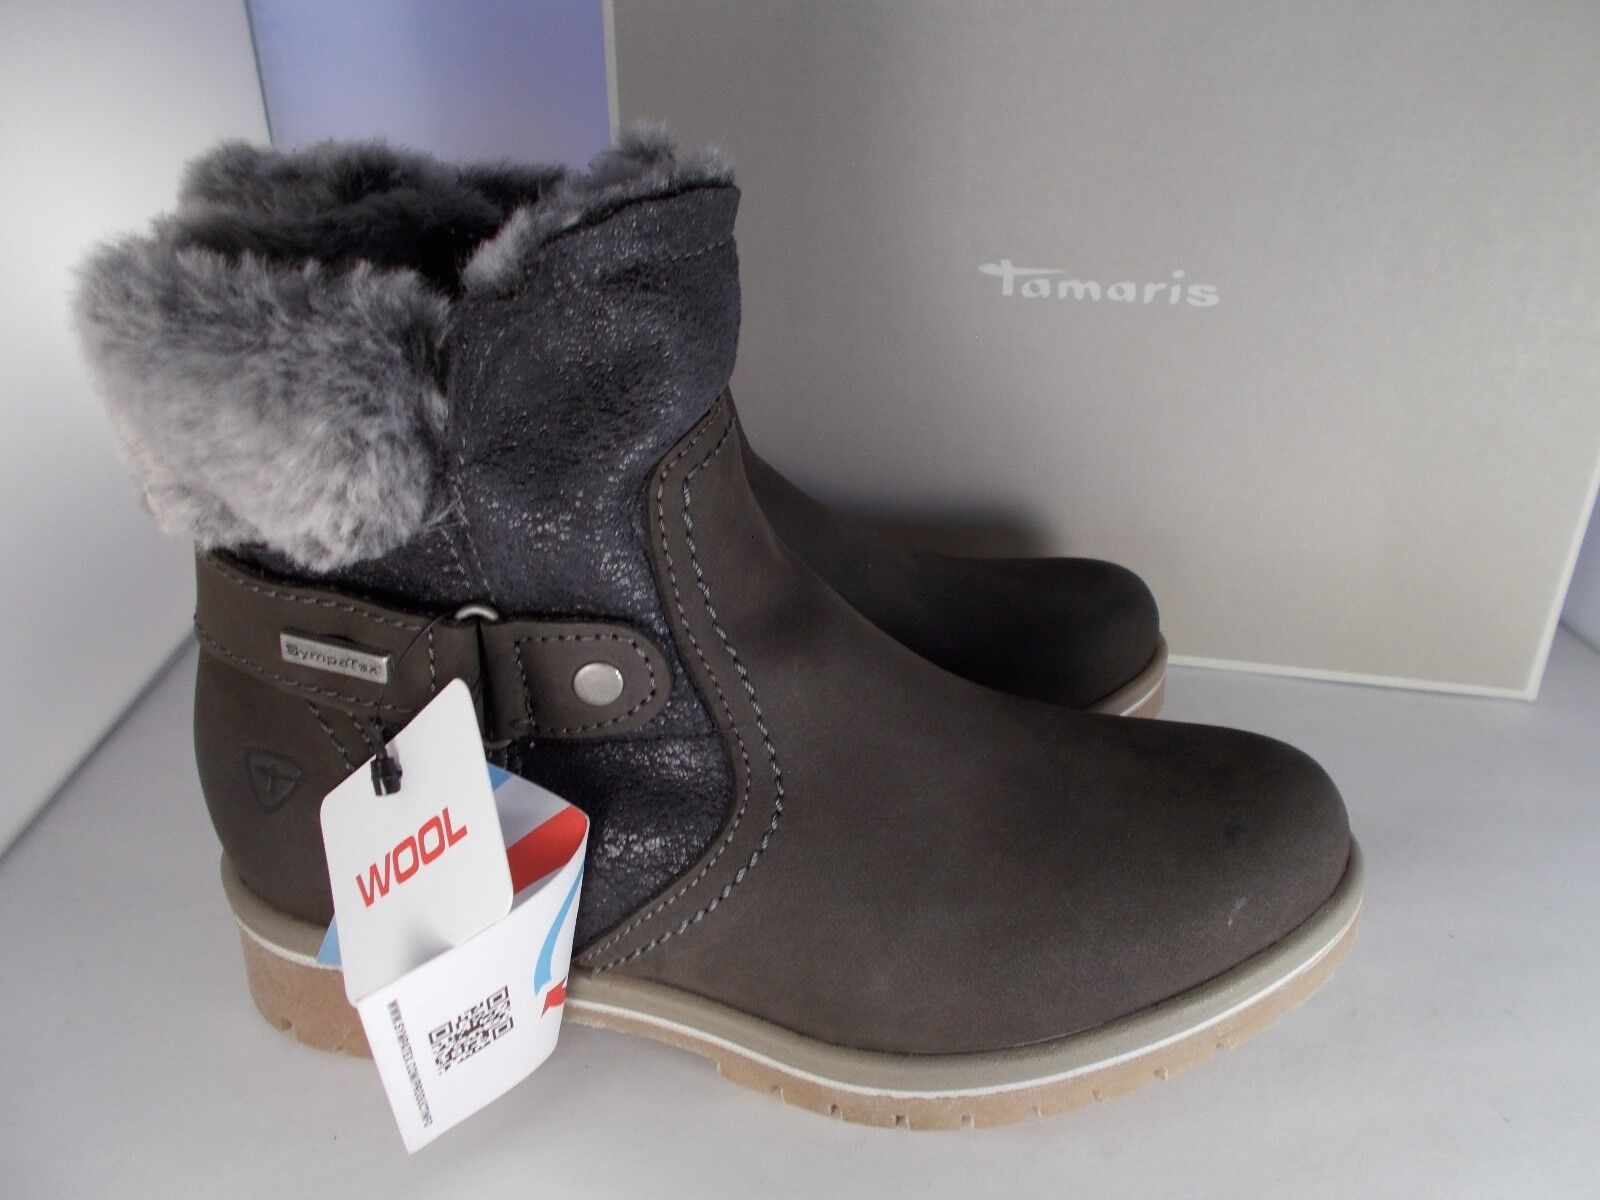 Tamaris Jeanette 1-26449-27 Graphite Leather Boots Women's Size 5.5 New In Box